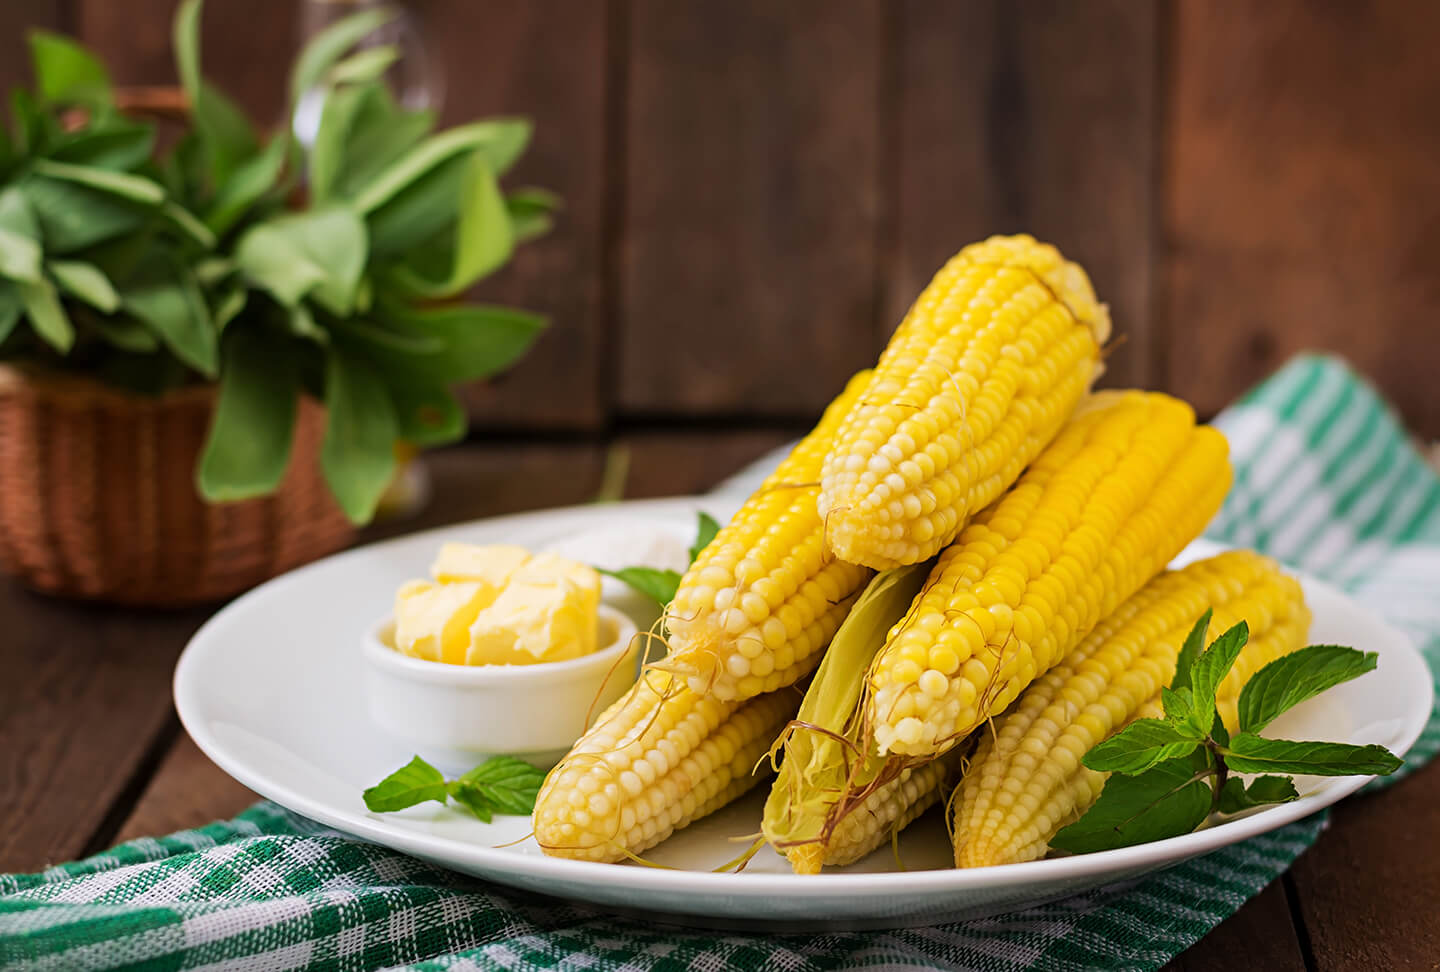 A fresh plate of cooked corn on the cob with a small dish of butter on the side.